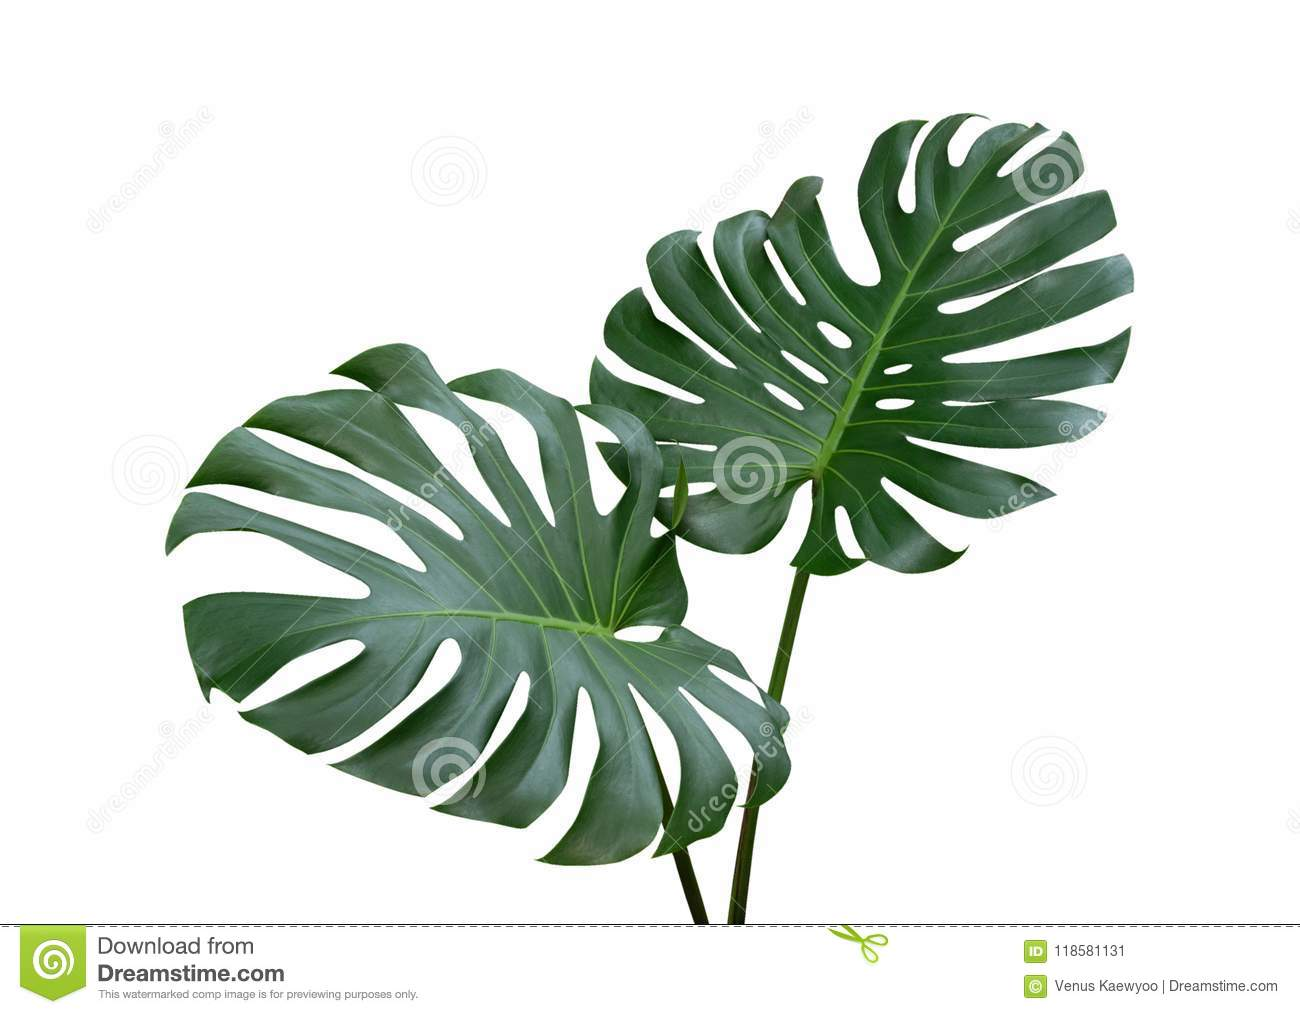 25 110 Monstera Plant Photos Free Royalty Free Stock Photos From Dreamstime